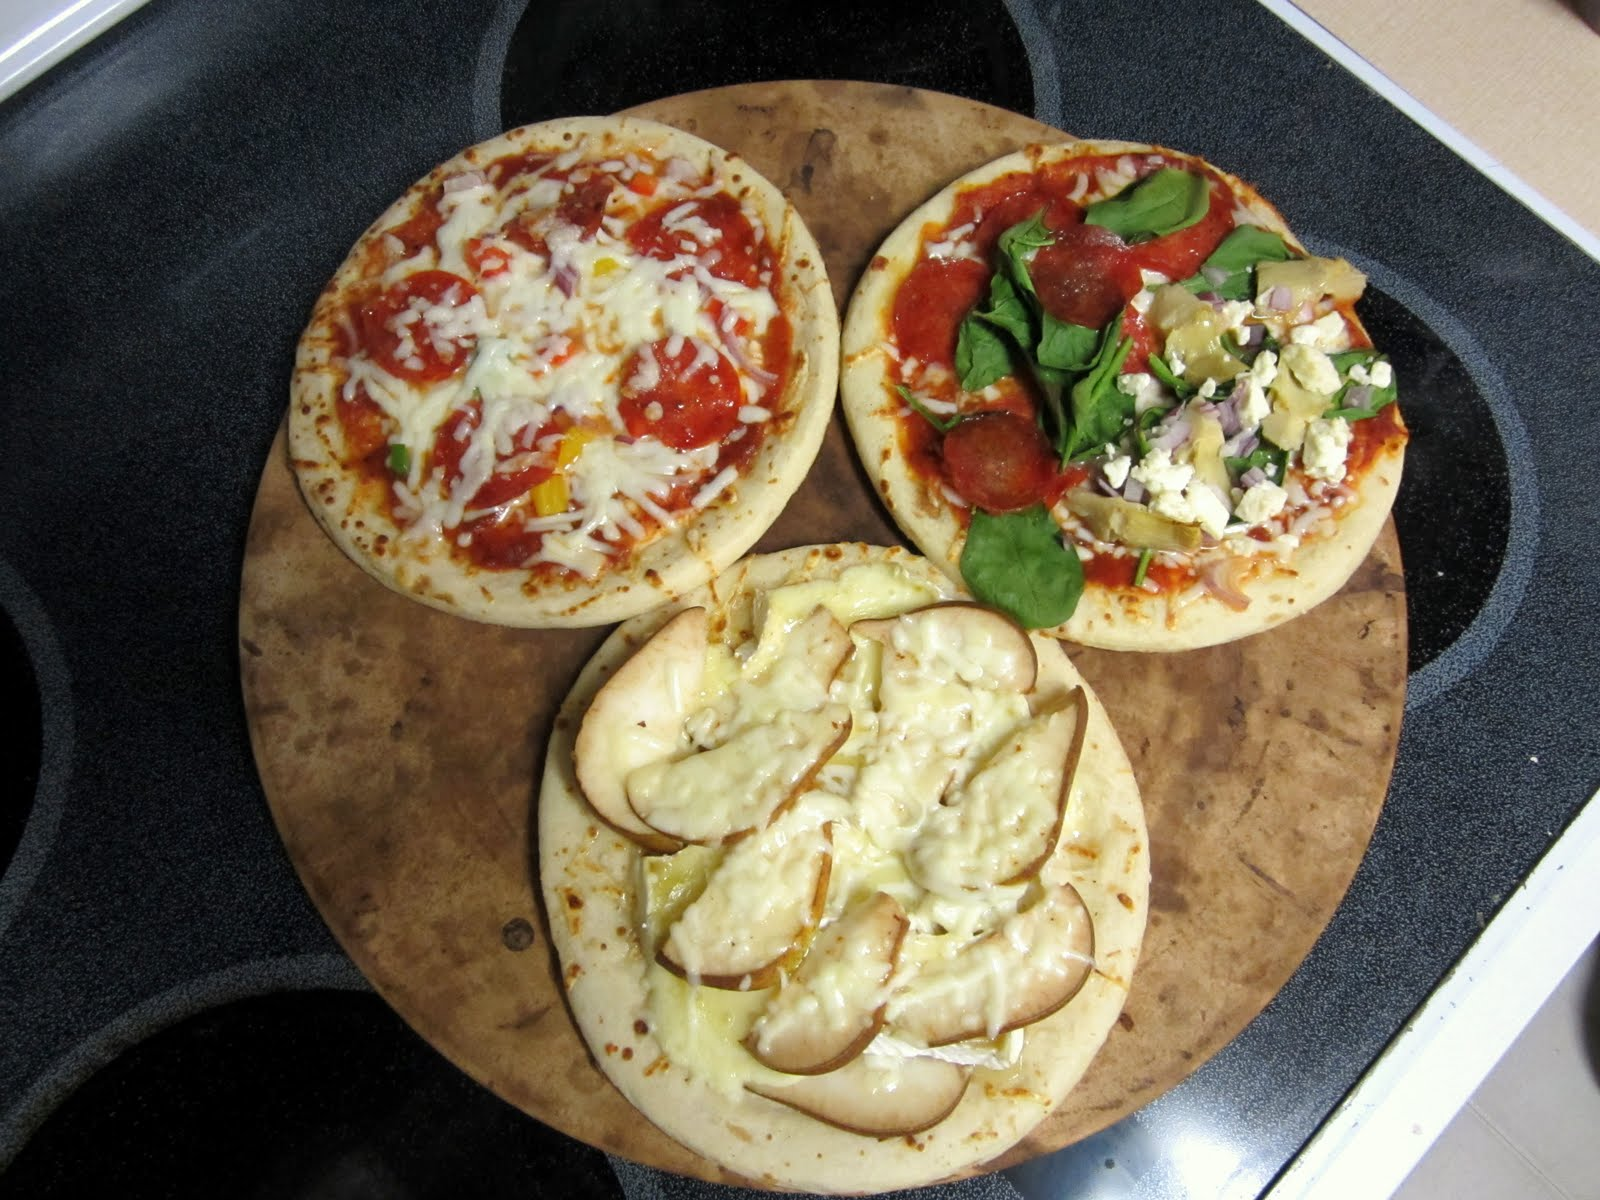 Make Now, Eat Later. You have a few choices with this pizza dough: You can make the dough and let it rise for an hour or so, then proceed with making your pizzas right away, or you can make Calories: per serving.